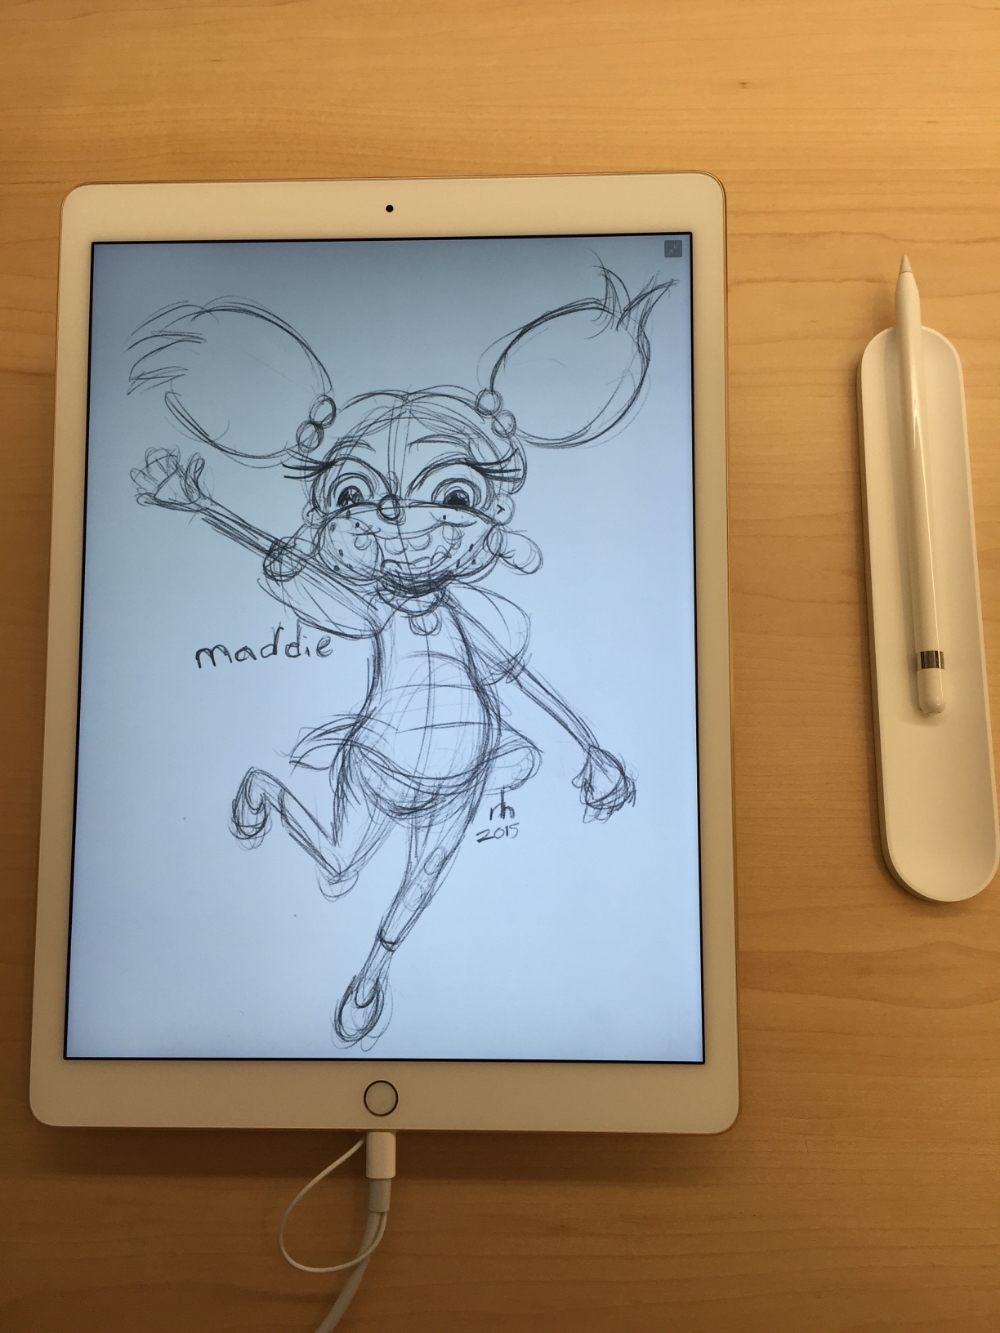 When I waited to get my hands on an Apple Pencil, I took it for a spin in store. I fell in love almost immediately.